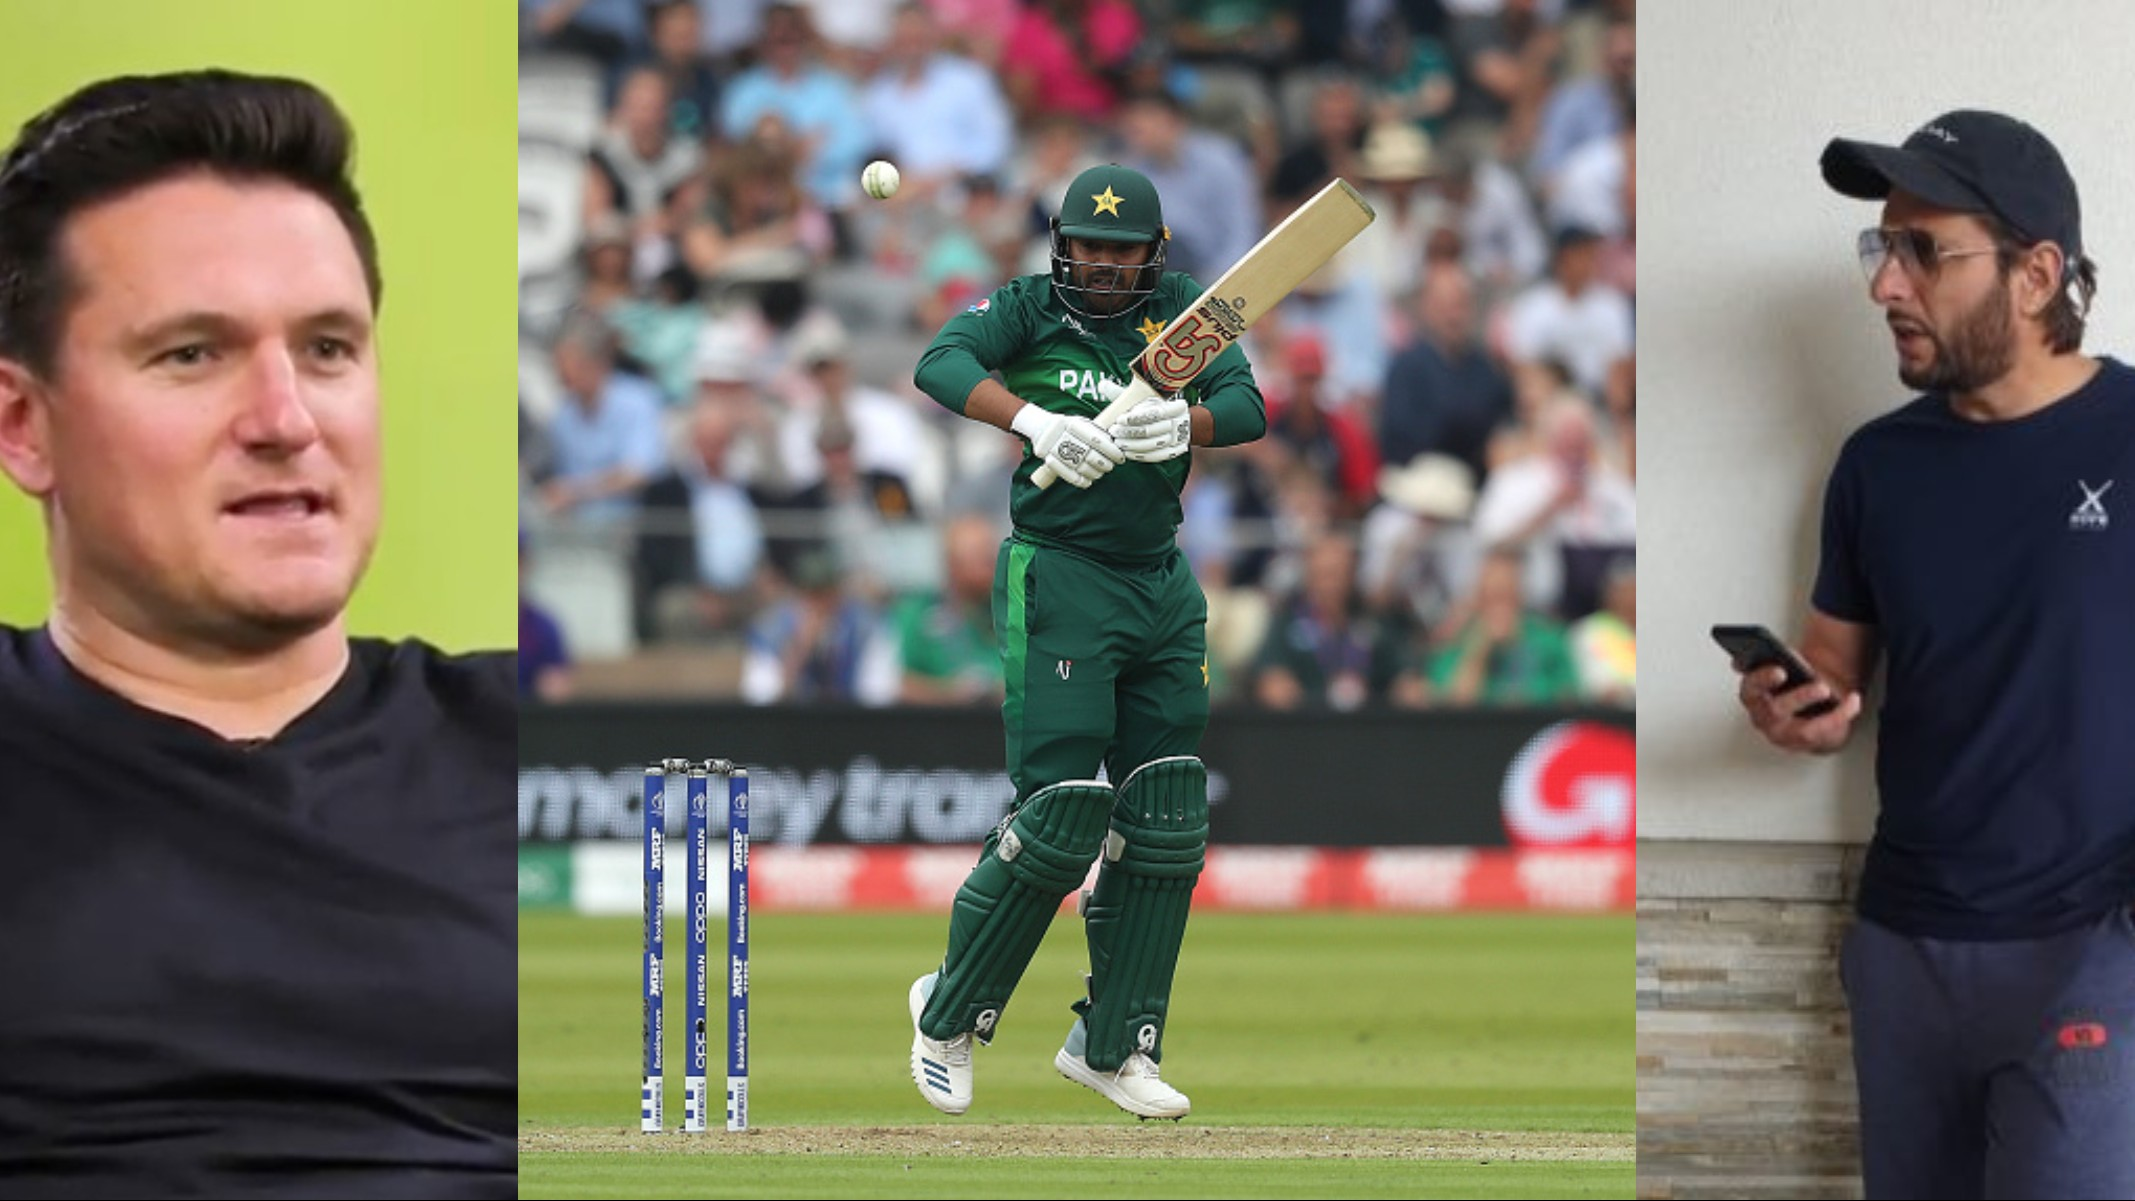 CWC 2019: Cricket fraternity elated as Pakistan wins by 49 runs and virtually knocks South Africa out of ICC World Cup